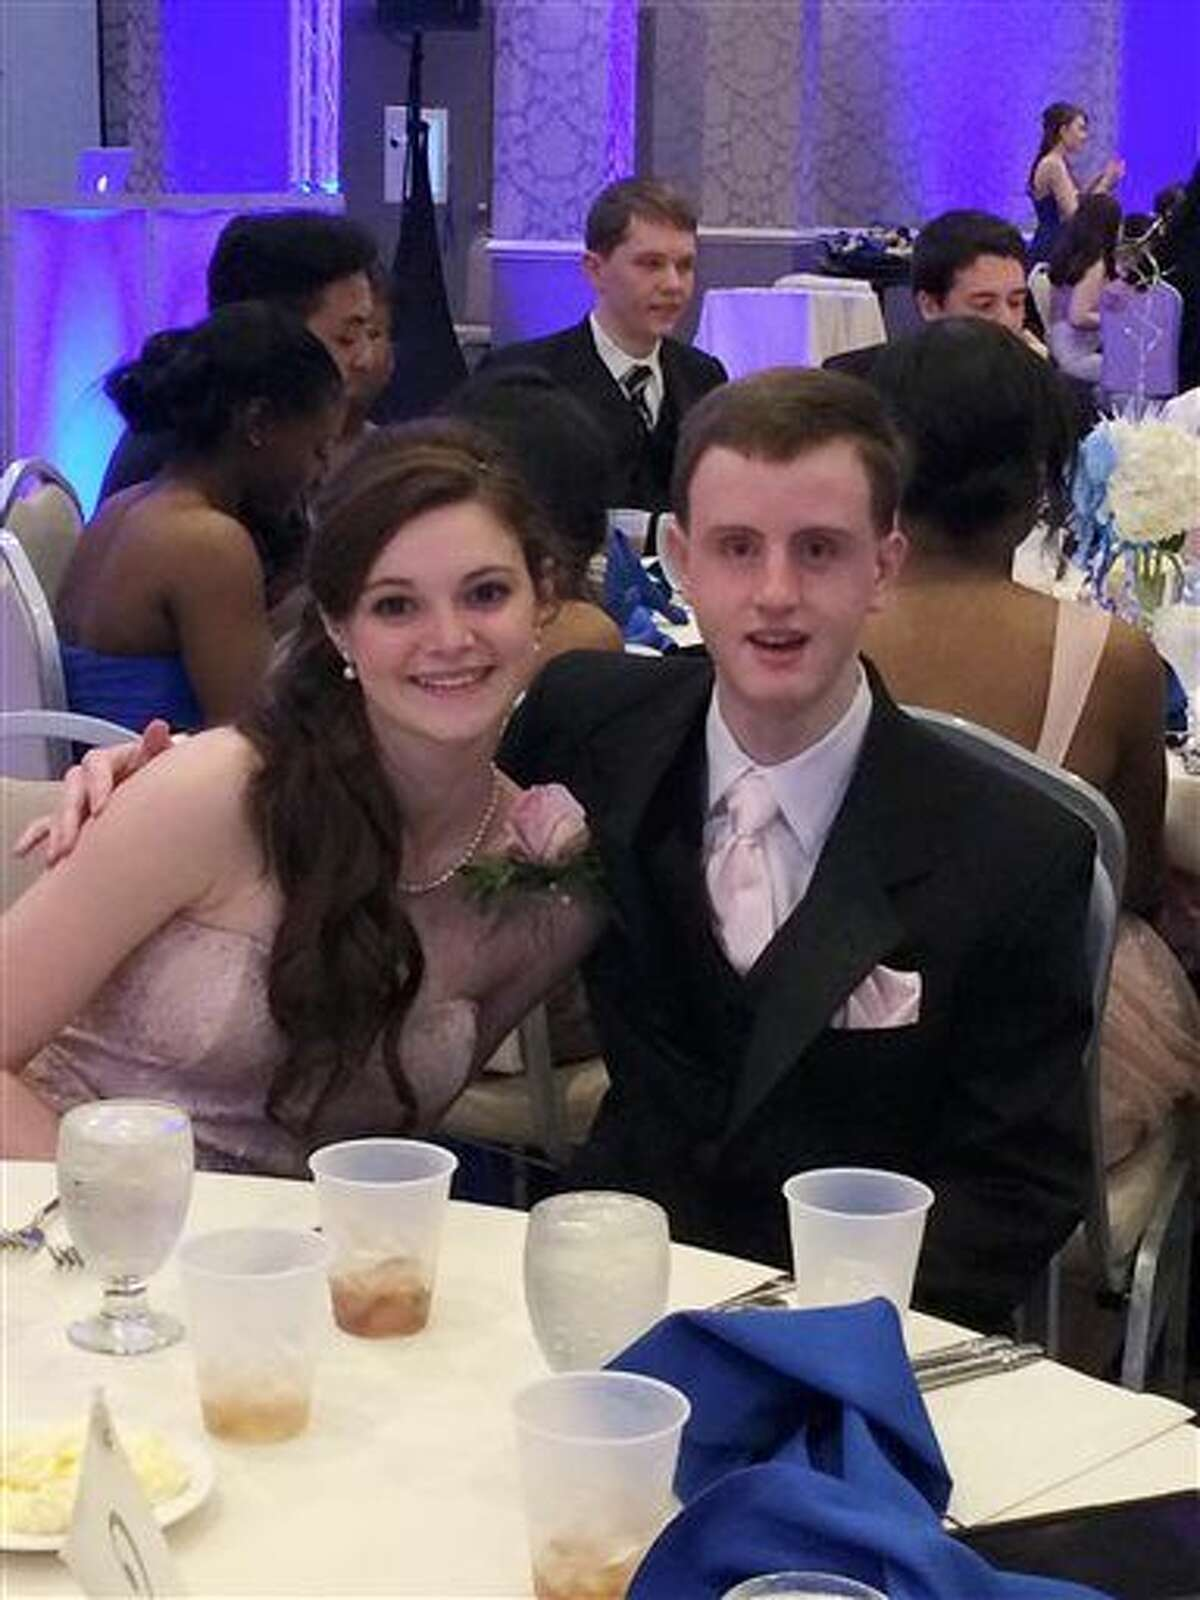 This March 28, 2015 photo provided by Kathty Lovetere shows Kaitlin McCarthy and Matty Marcone, students at Canton High School in Canton, Mass., at the school's junior prom. Kaitlin invited Matty, who has special needs, to be her date and they were crowned prom king and queen. Prom culture has changed so that some teens are now using the big night as a platform for social change and as an opportunity to be inclusive rather than exclusive. (Kathy Lovetere via AP)